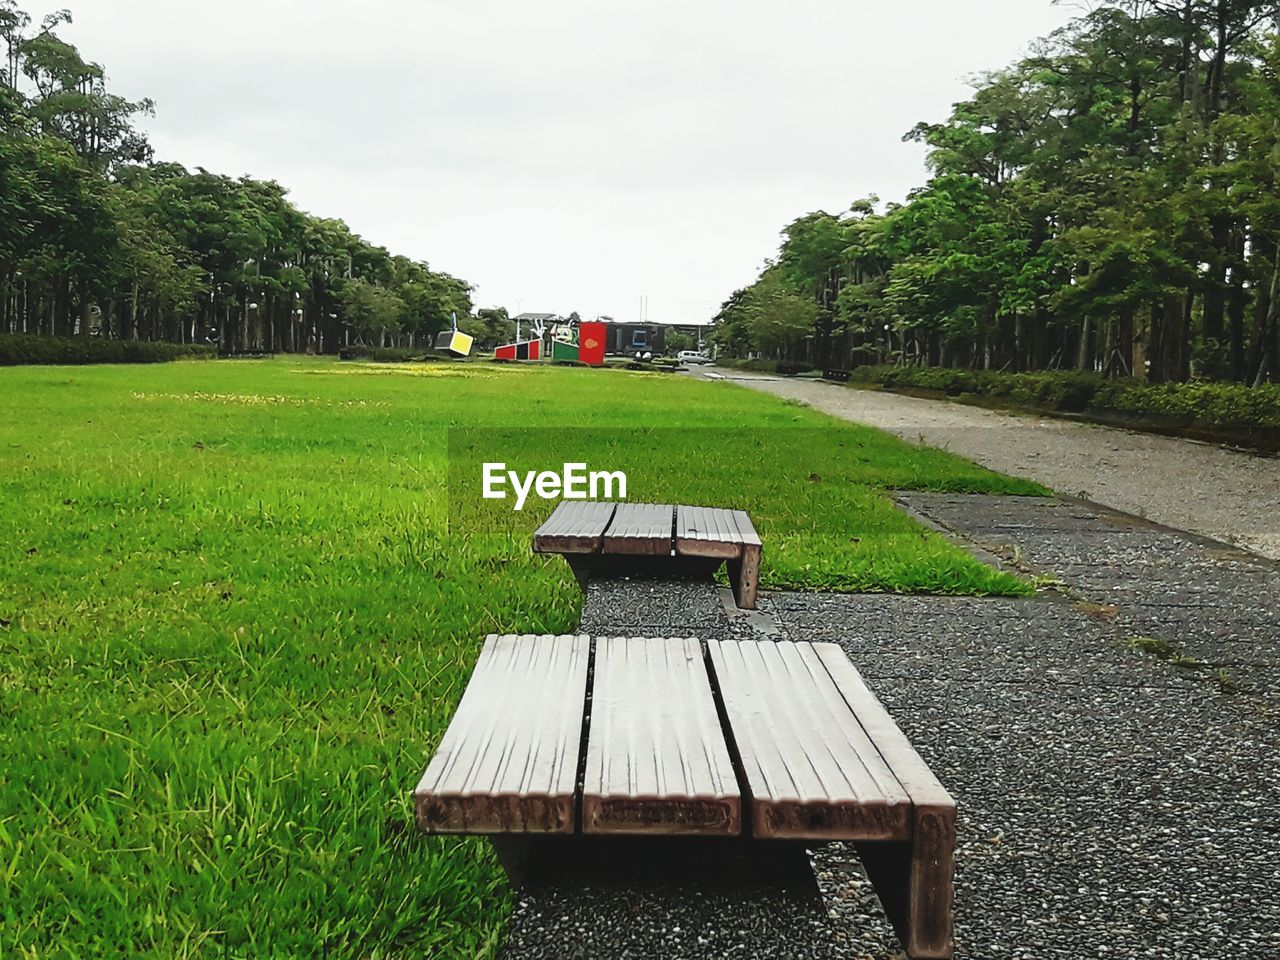 plant, green color, tree, grass, sky, nature, growth, land, day, field, architecture, no people, built structure, seat, outdoors, beauty in nature, empty, wood - material, bench, absence